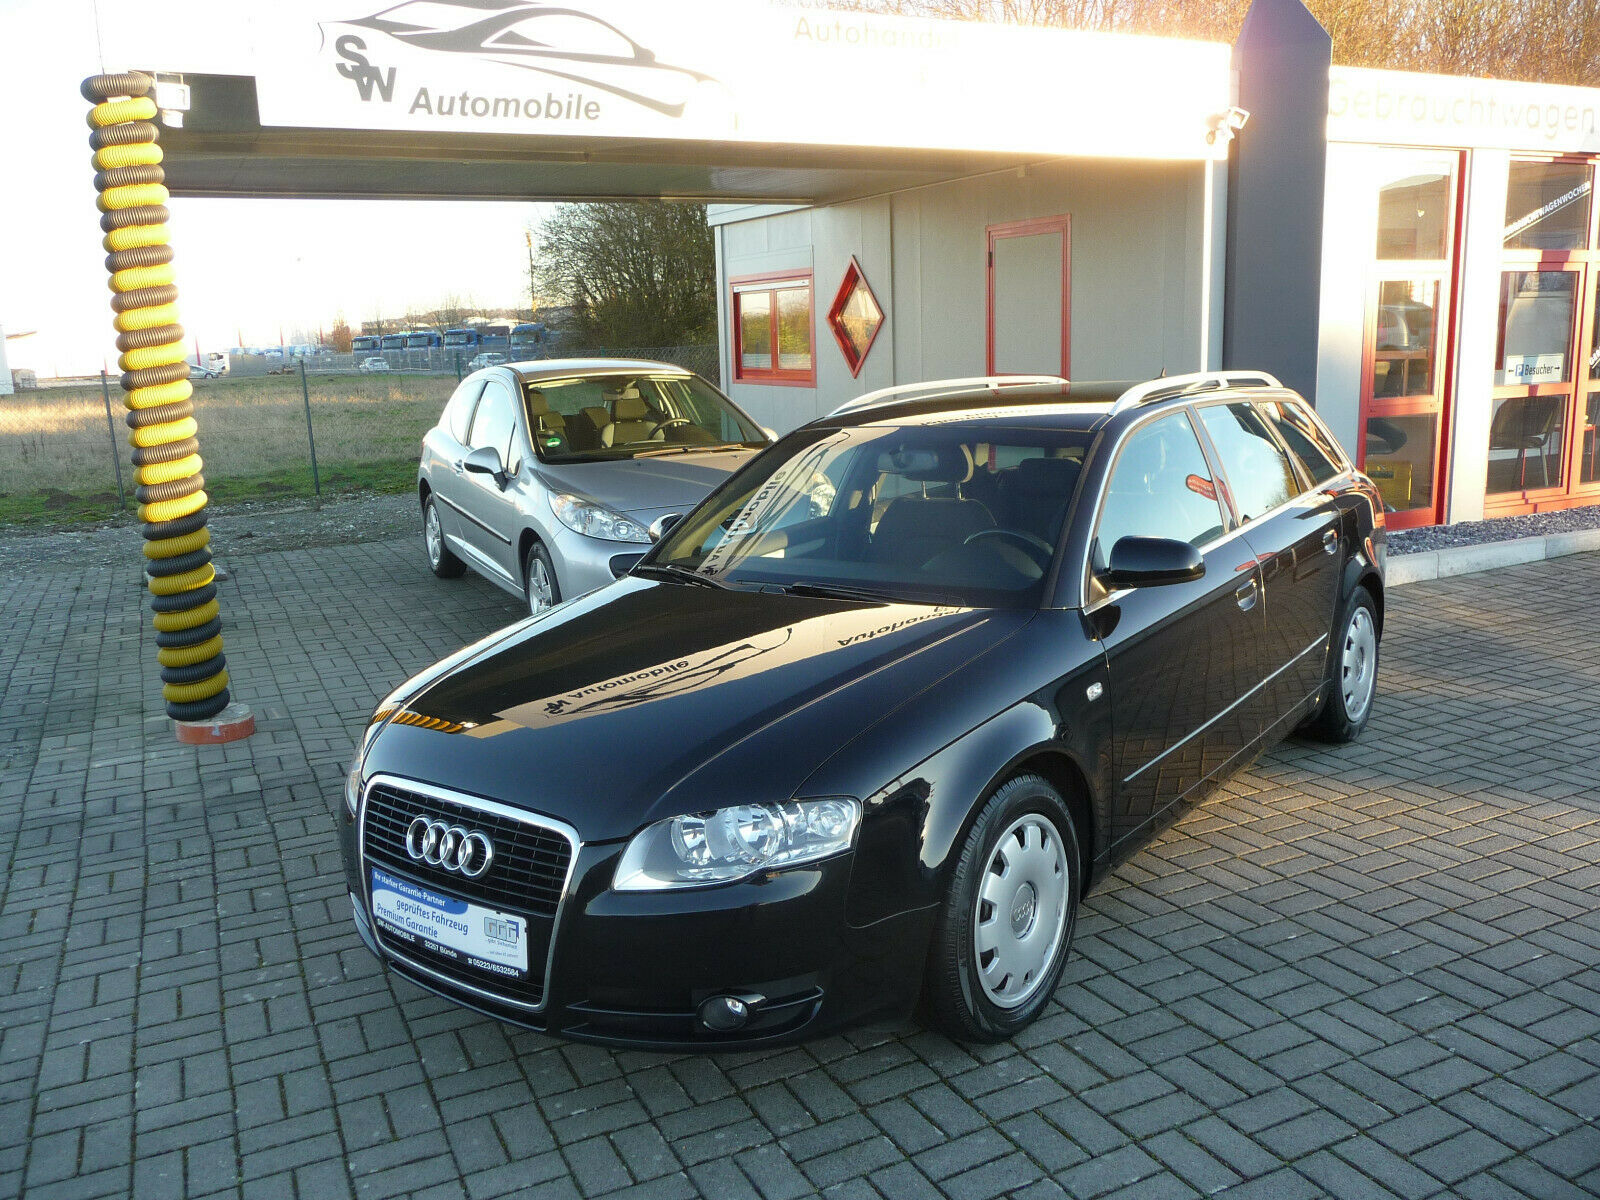 AUDI A4 Avant 2.0 TDI Business Edition Navi AHK 1800k